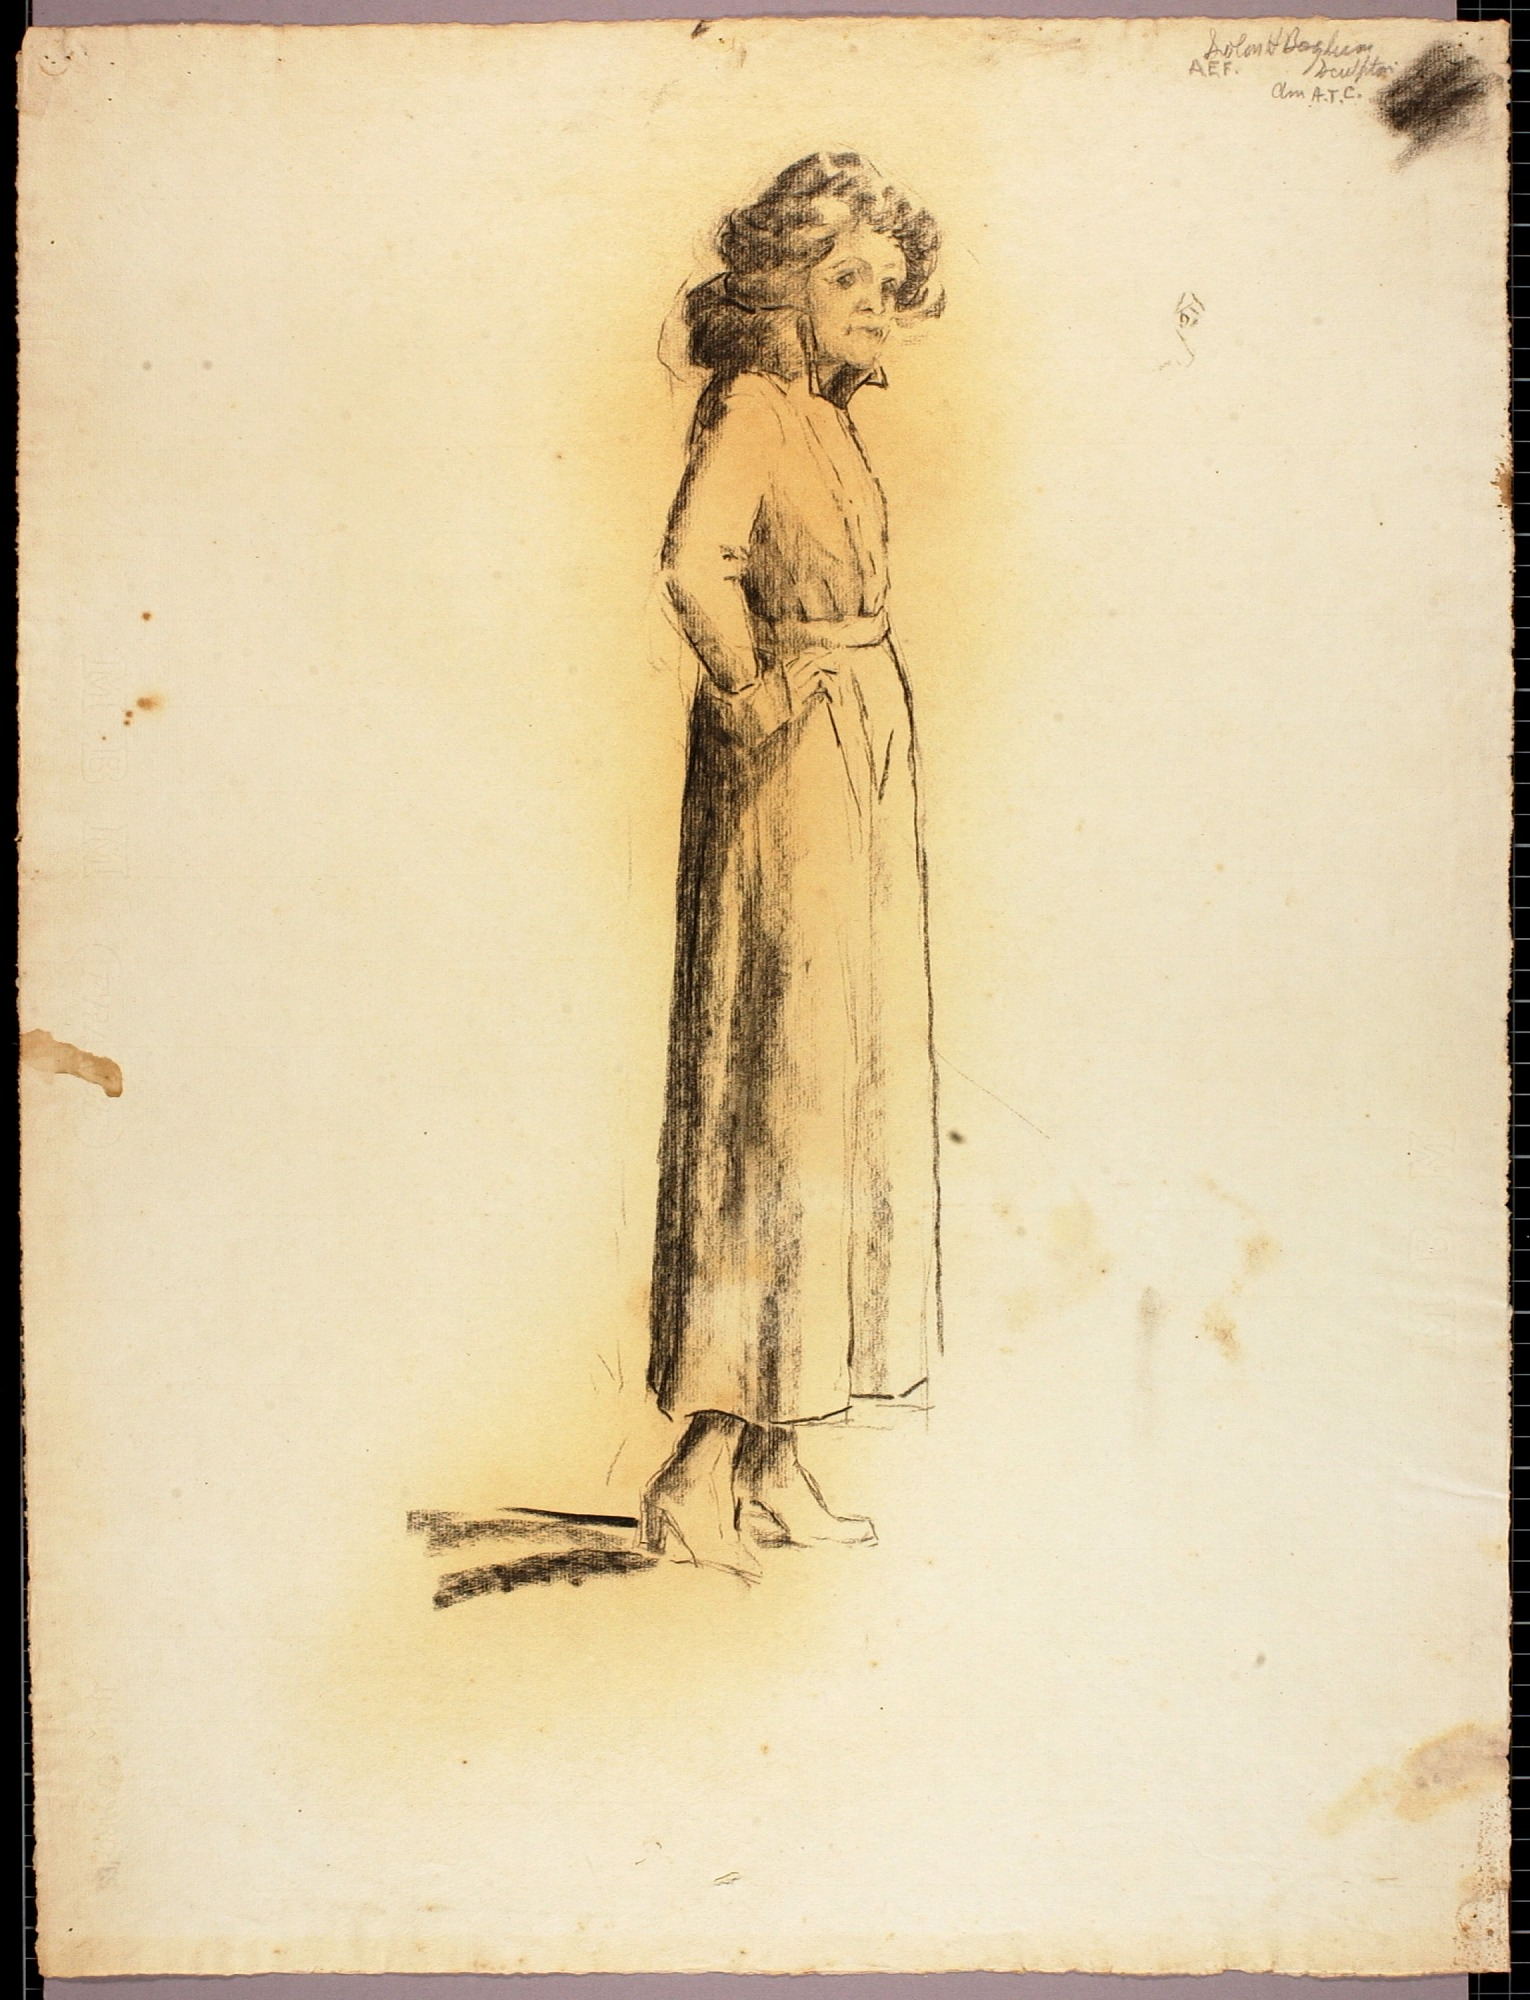 Woman in Long Dress